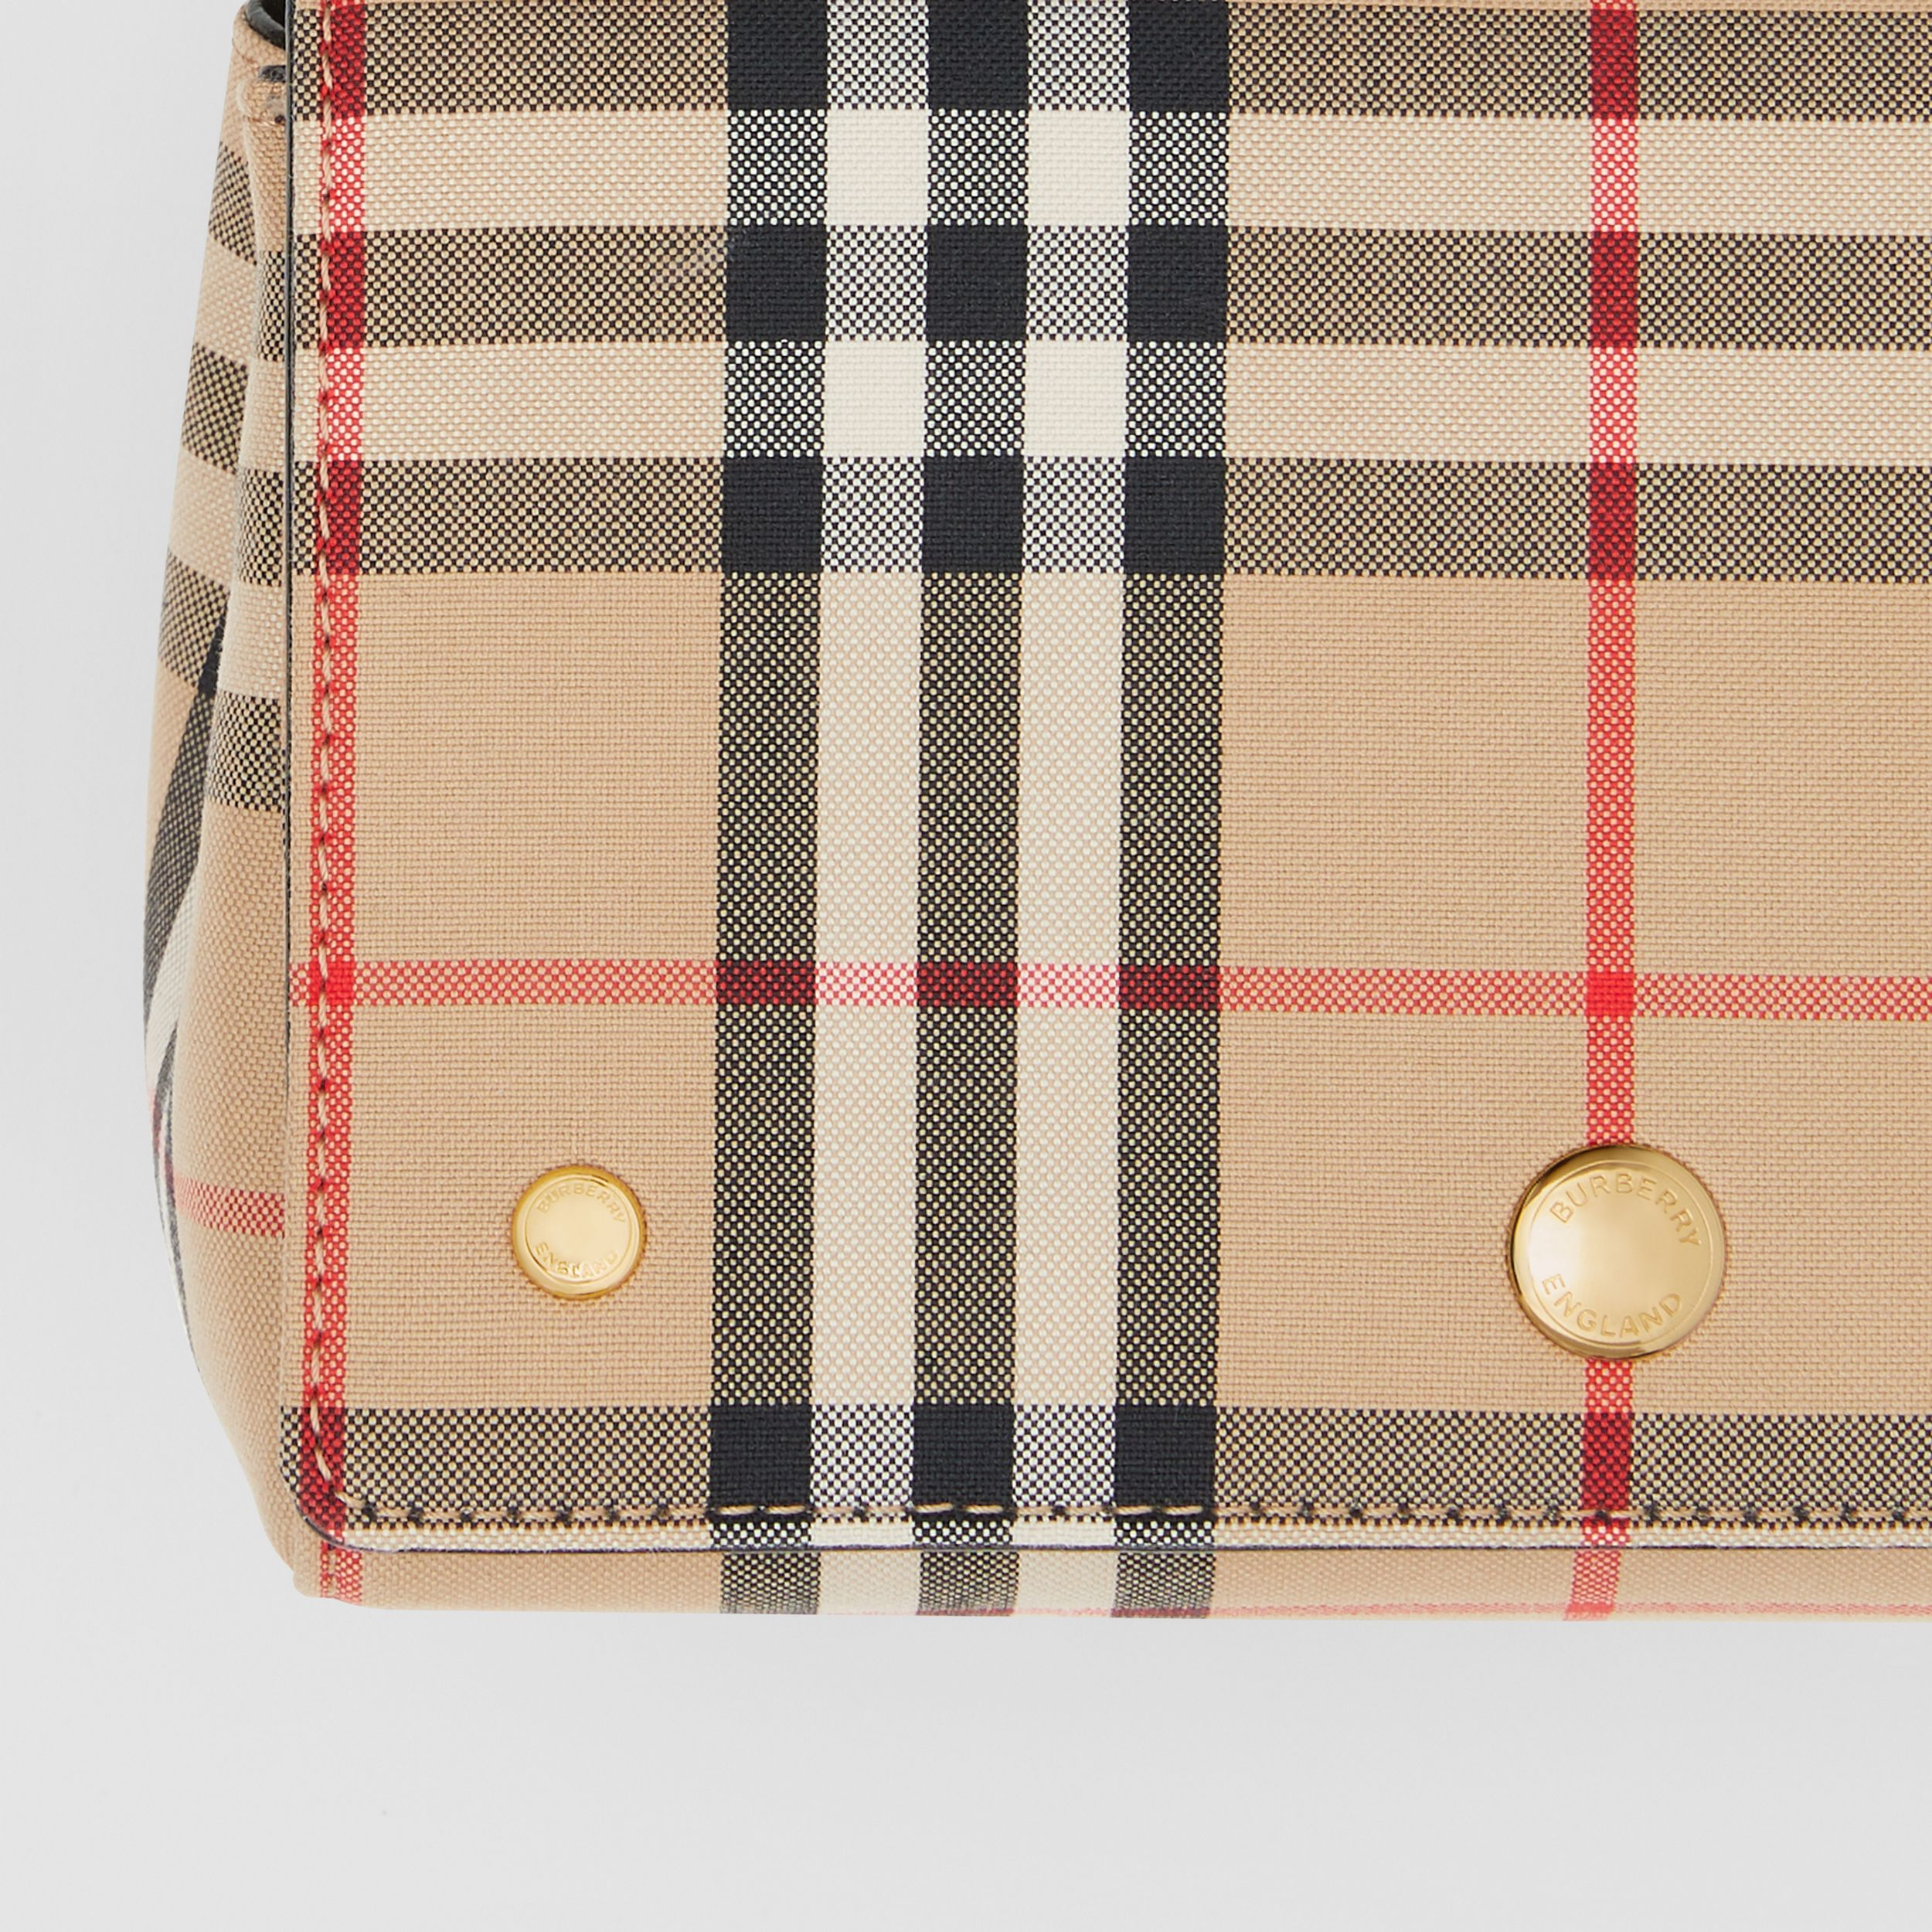 Small Vintage Check and Leather Crossbody Bag in Archive Beige/black - Women | Burberry - 2